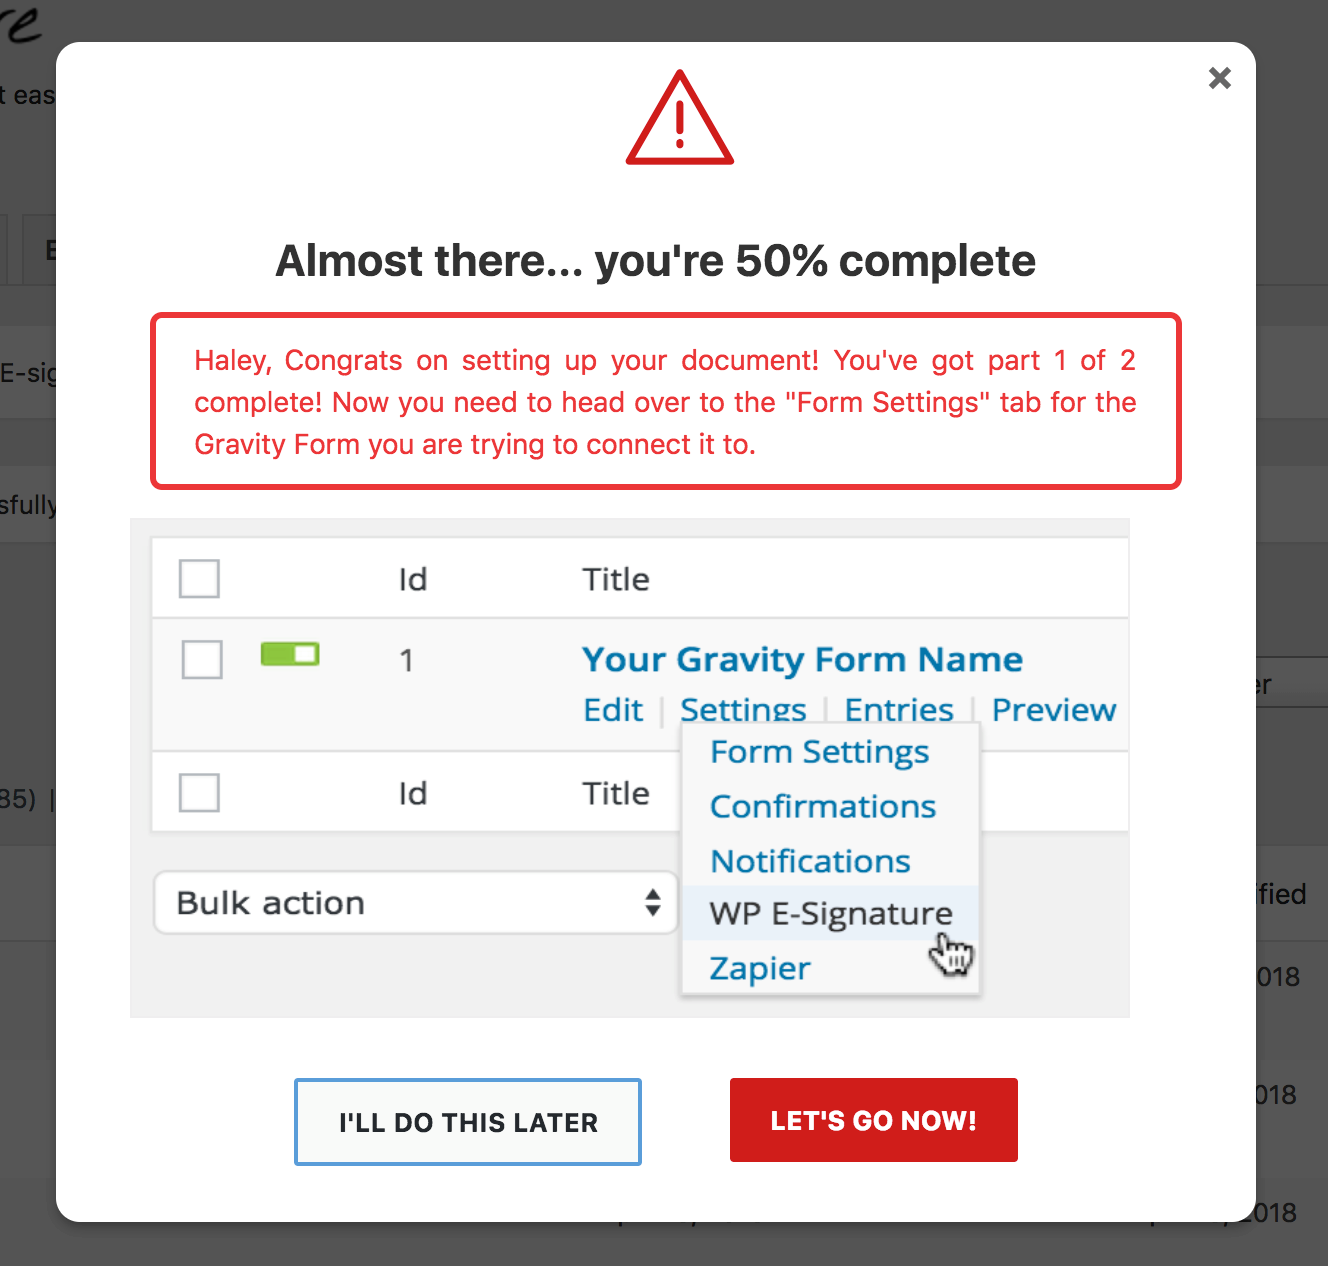 Let's go now option to be directed to Gravity Forms Settings